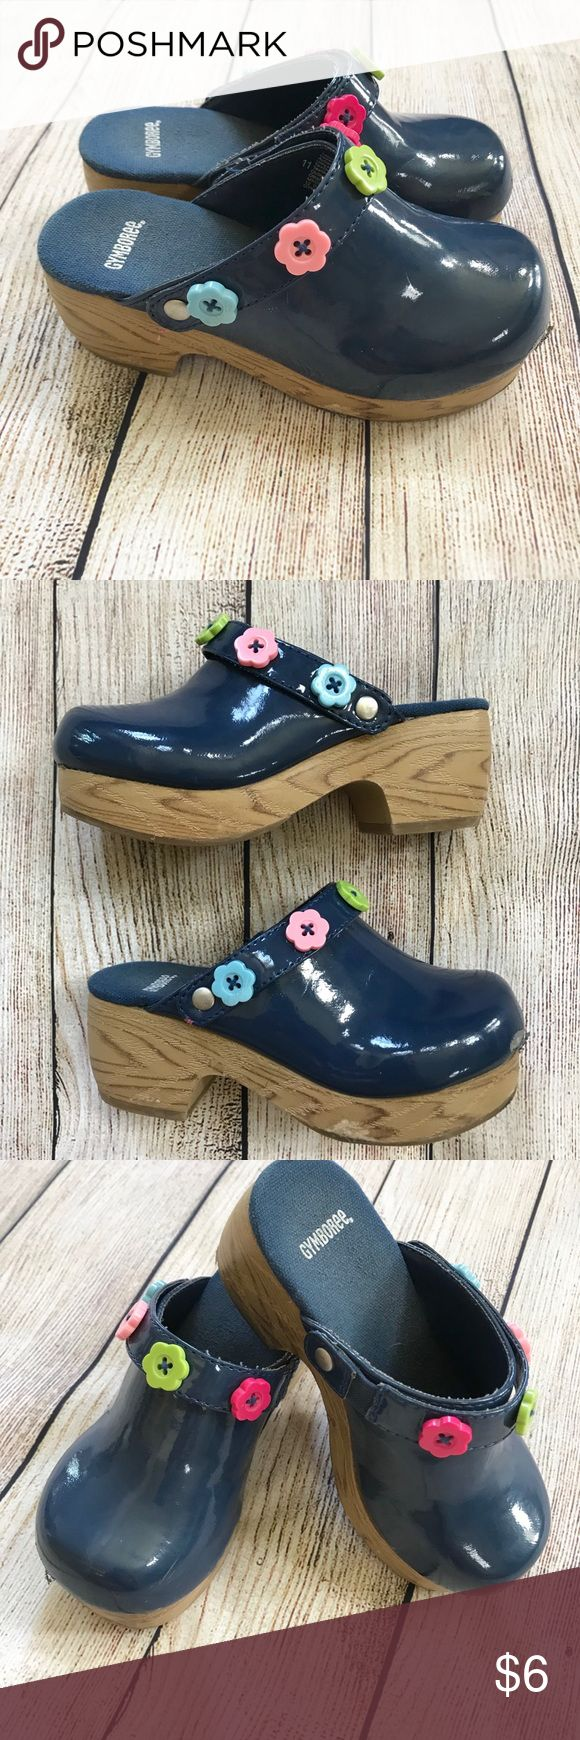 Gymboree Patent Navy Clogs Patent navy blue clogs with